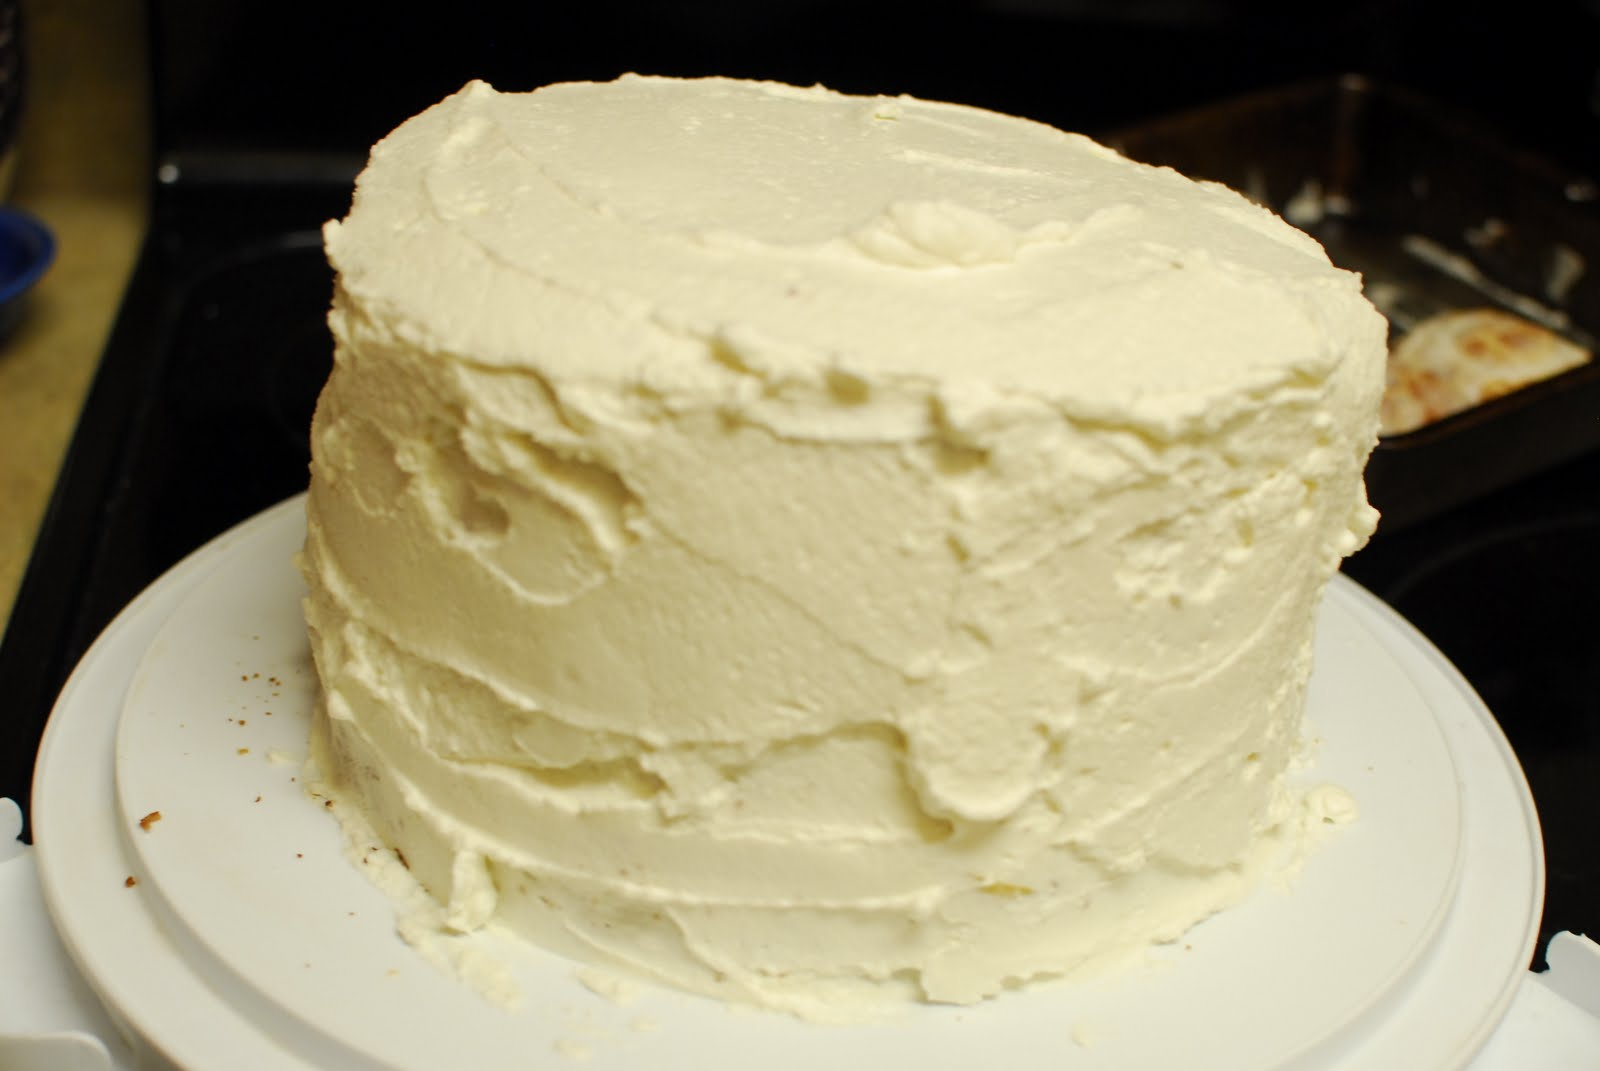 ... layer cake peach layer cake towering coconut layer cake coconut peach